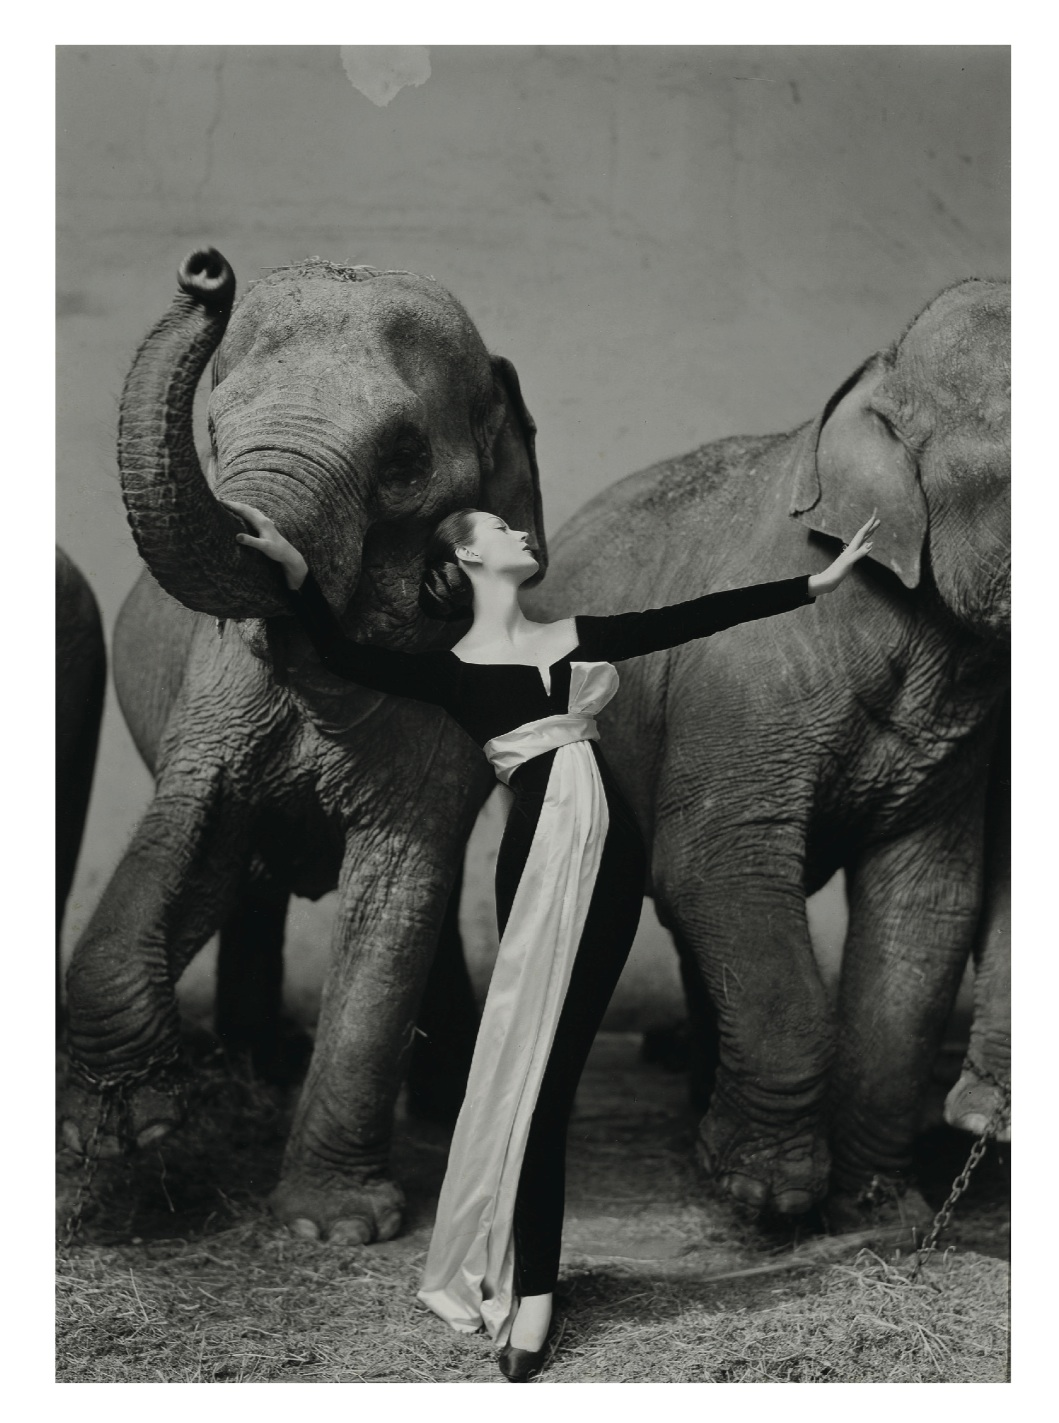 © 2014 The Richard Avedon Foundation